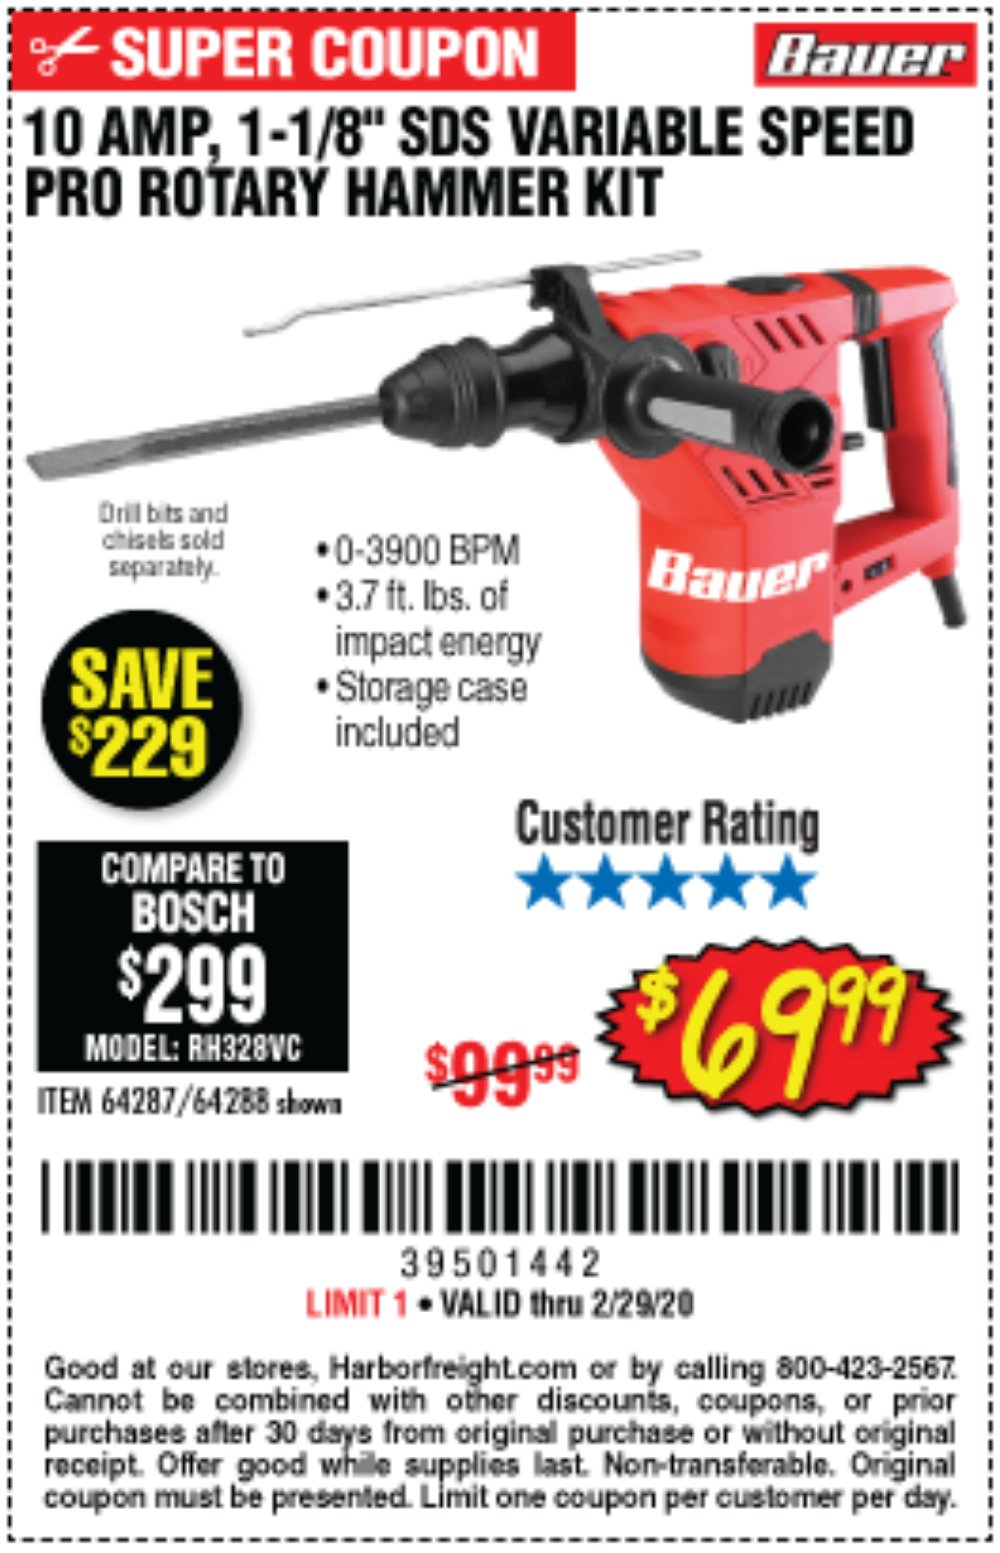 Harbor Freight Coupon, HF Coupons - Bauer 10 Amp, 1-1/8